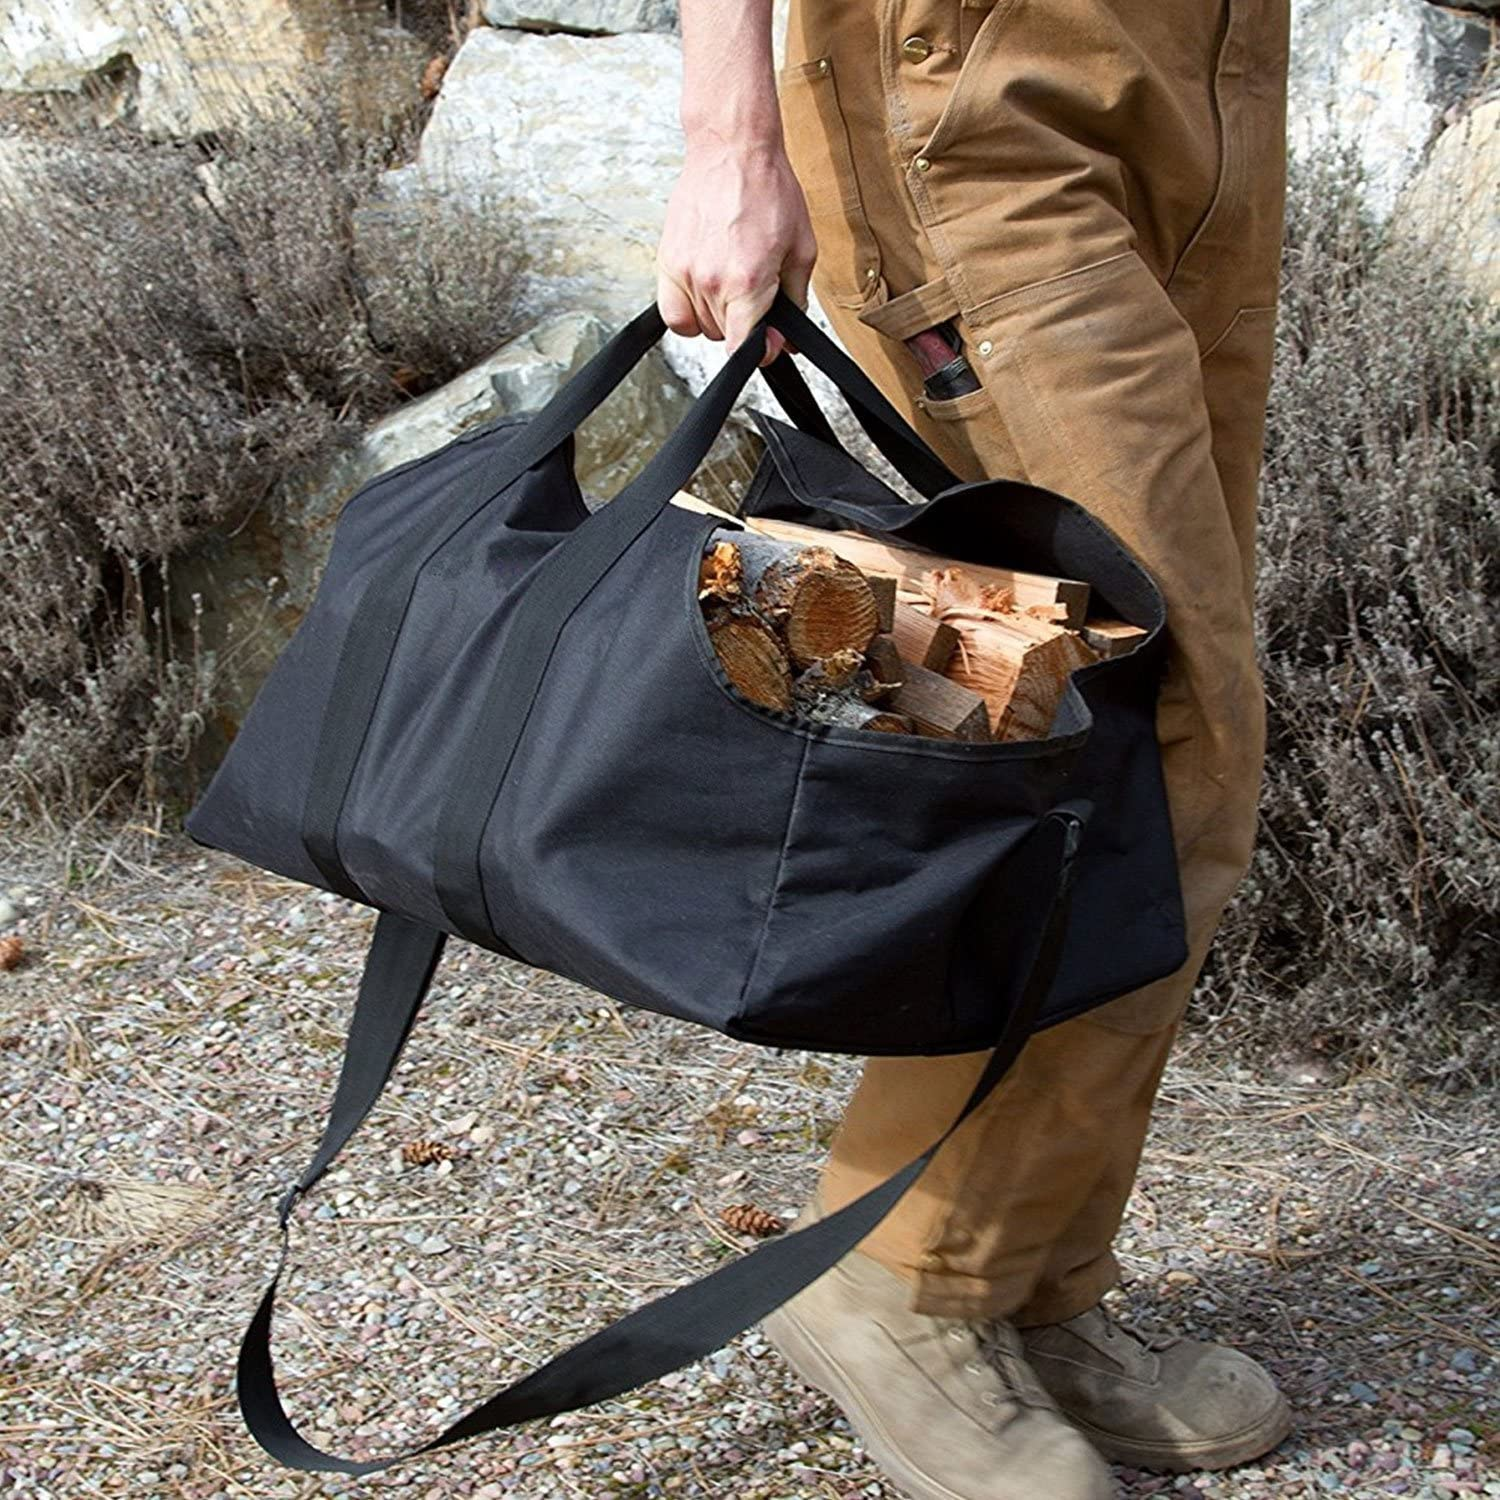 UNISTRENGH Log Carriers Firewood Carrier Log Tote Heavy Duty Best Bag for Carrying Wood Dust-Proof Collapsible Black